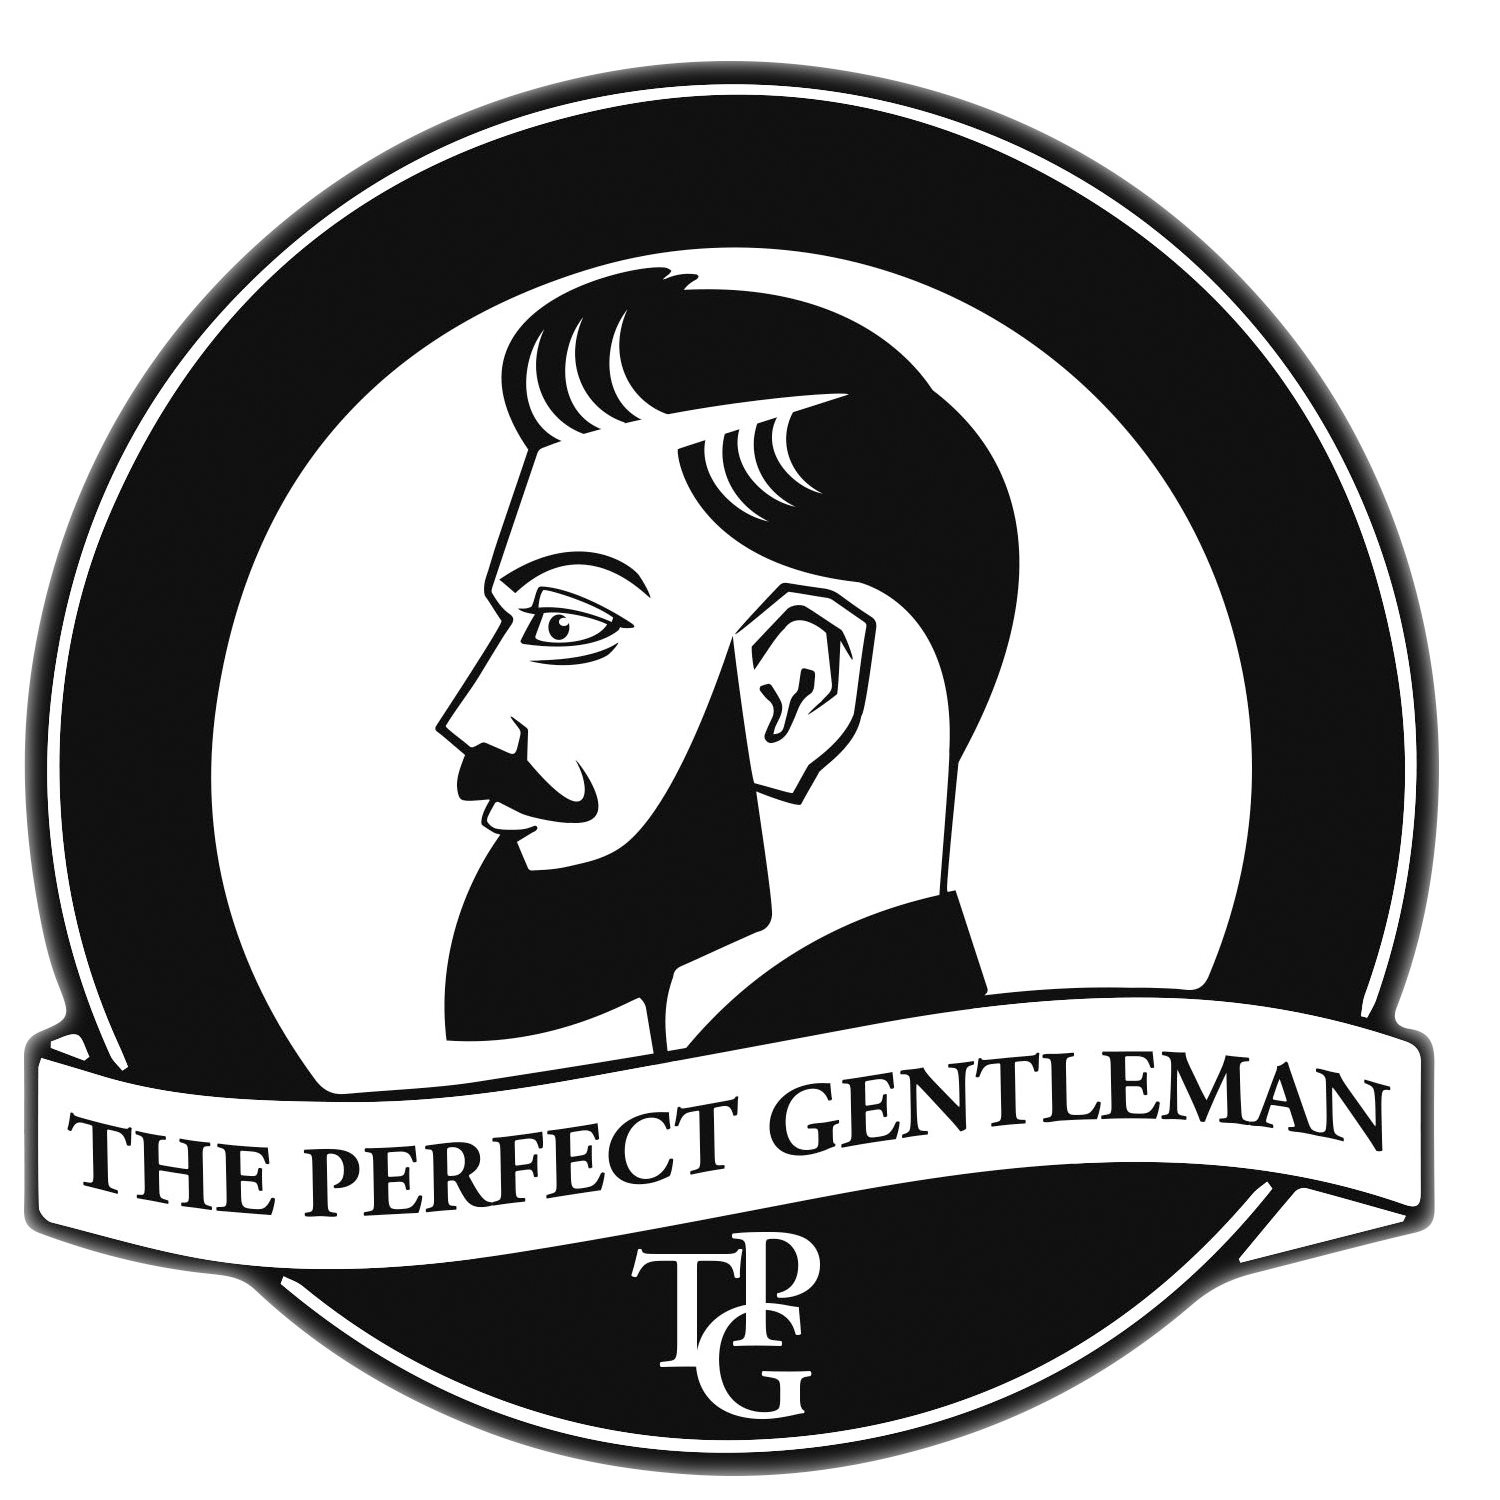 The Perfect Gentleman